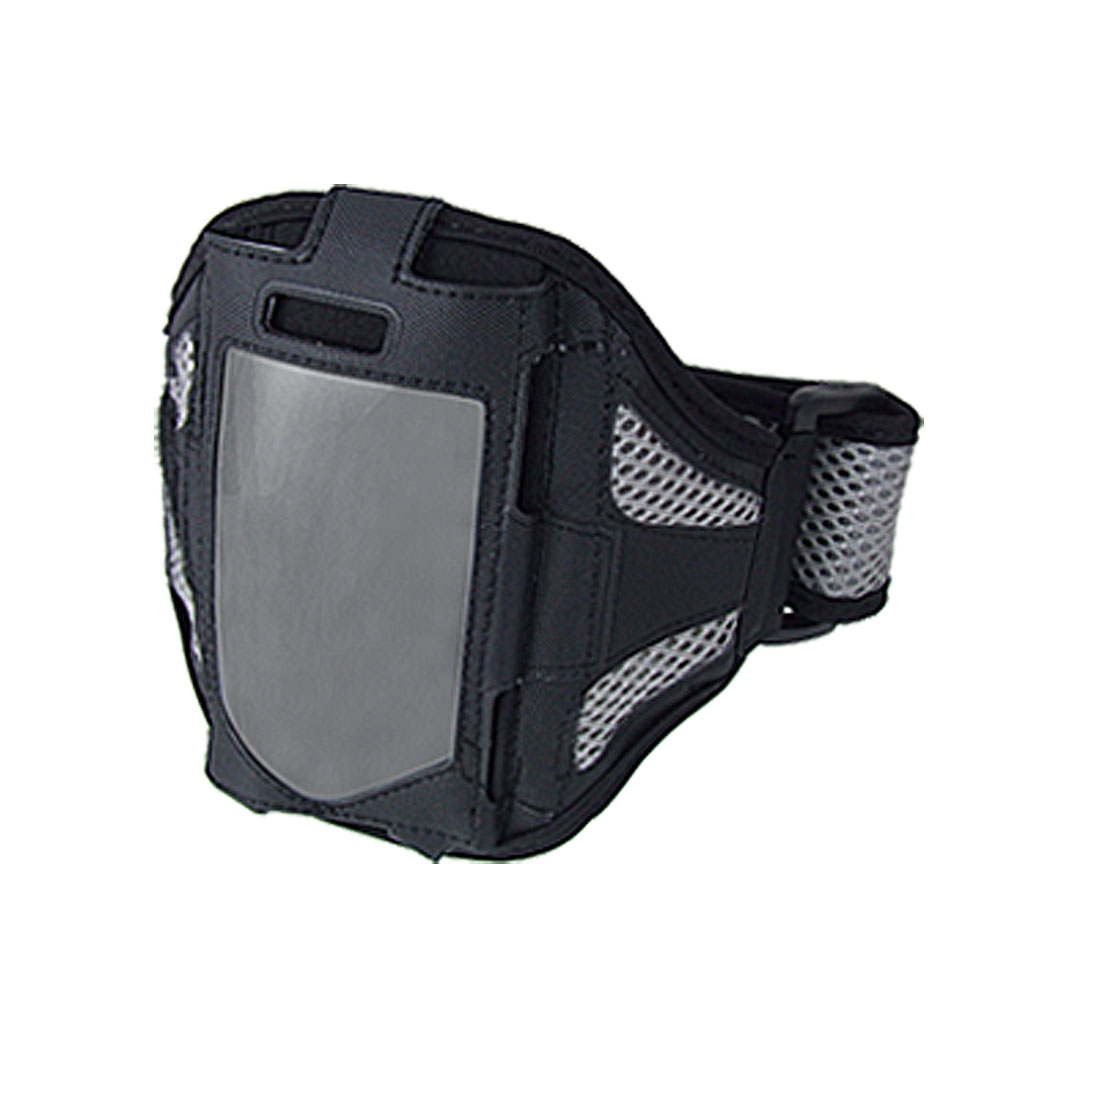 Black Gray Mesh Style Sports Case Holder Armband for iPhone 4 4G